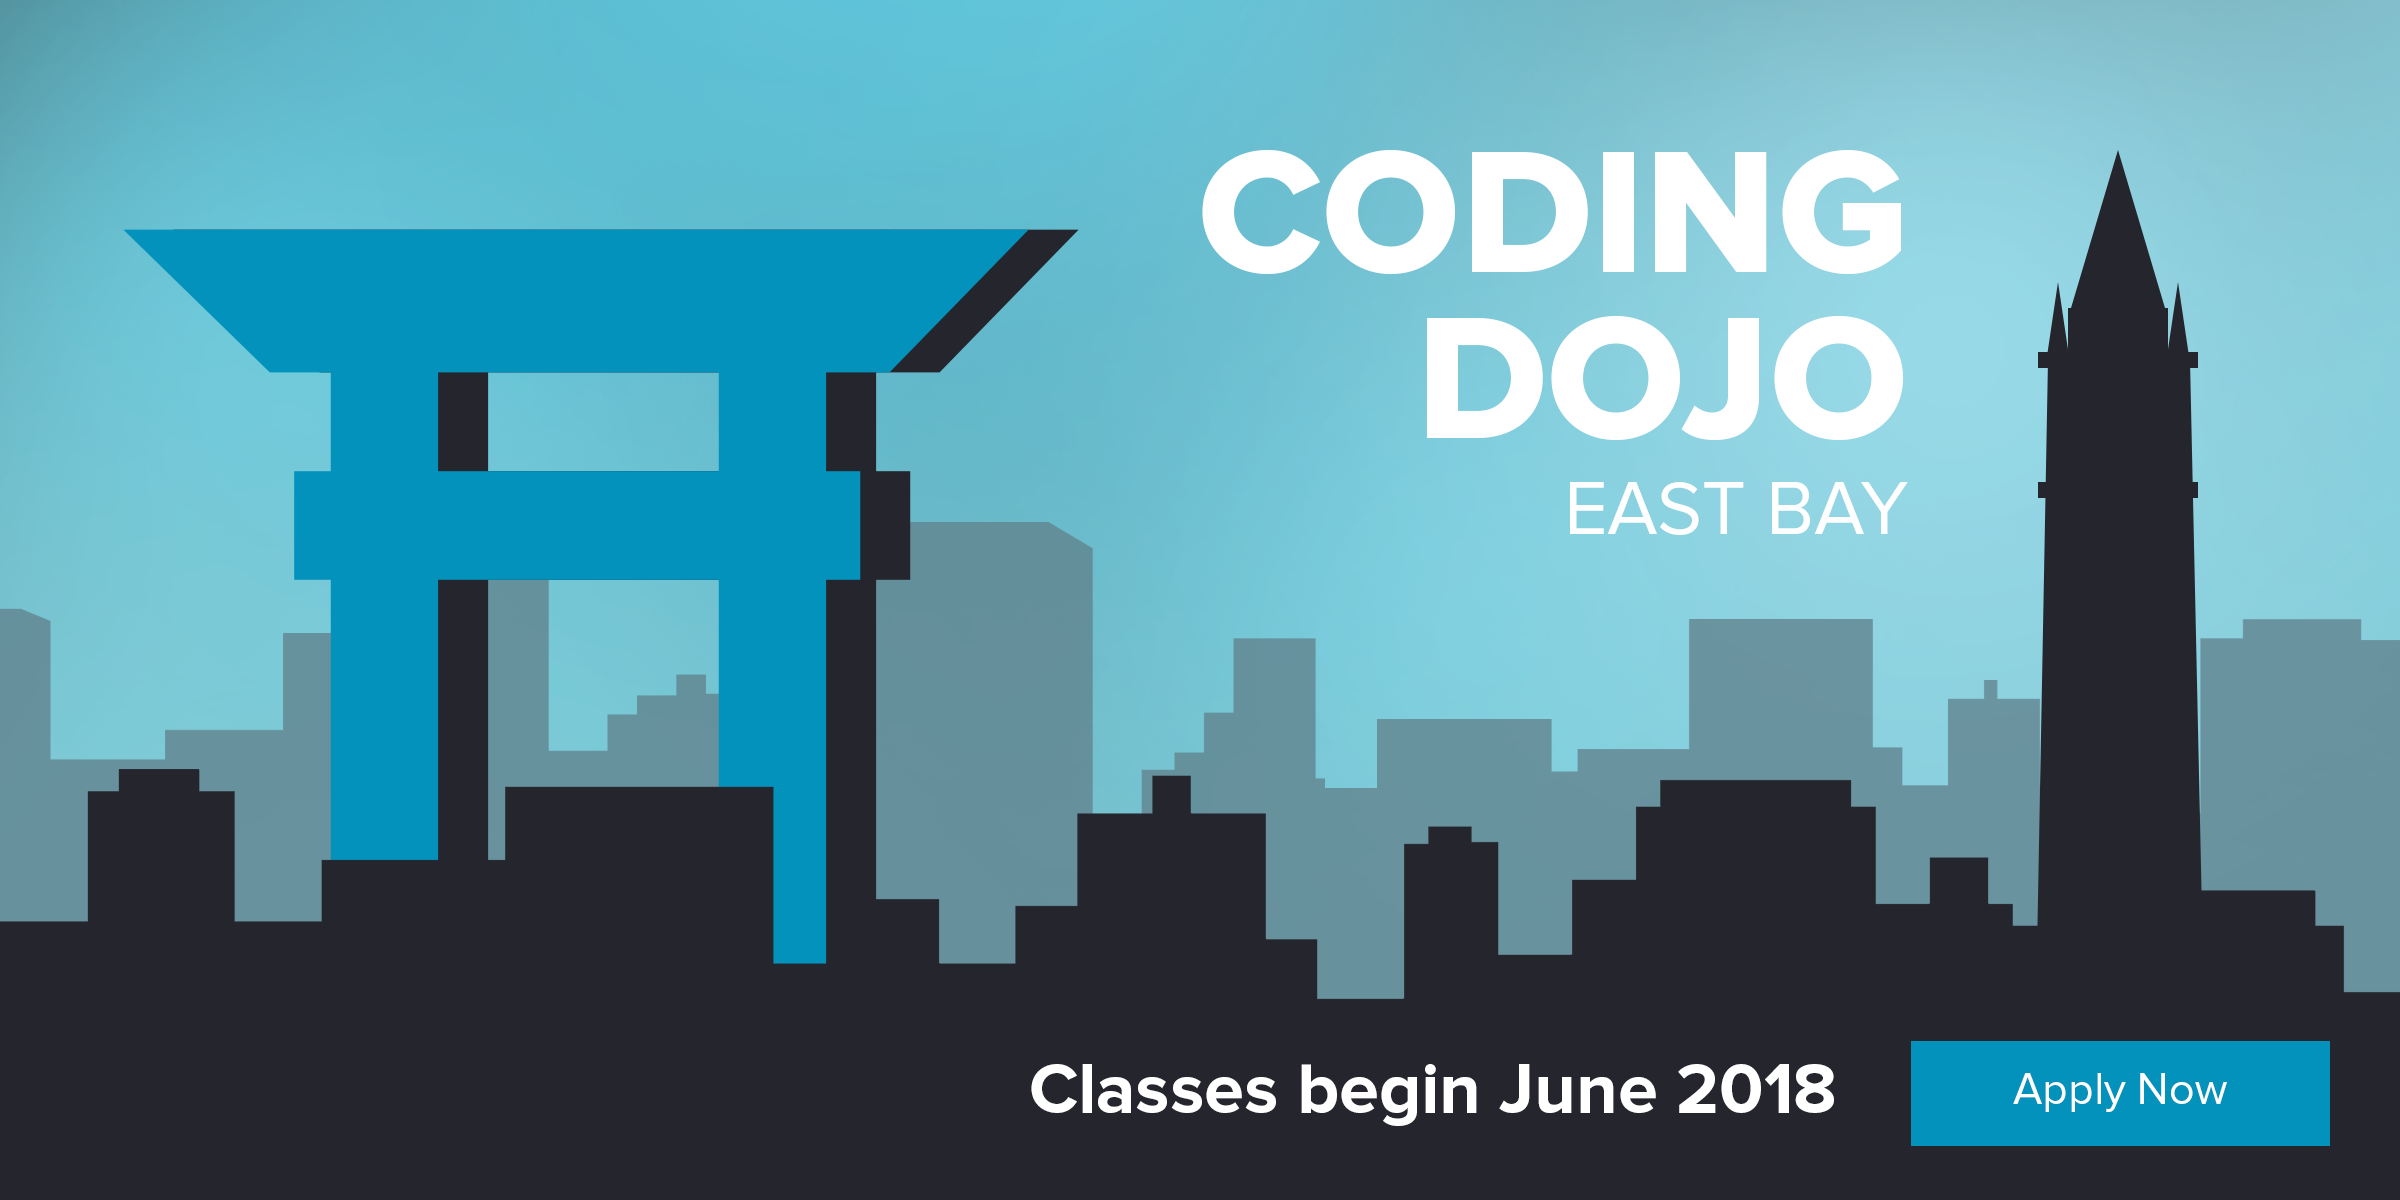 It's Official! Coding Dojo Expands to East Bay